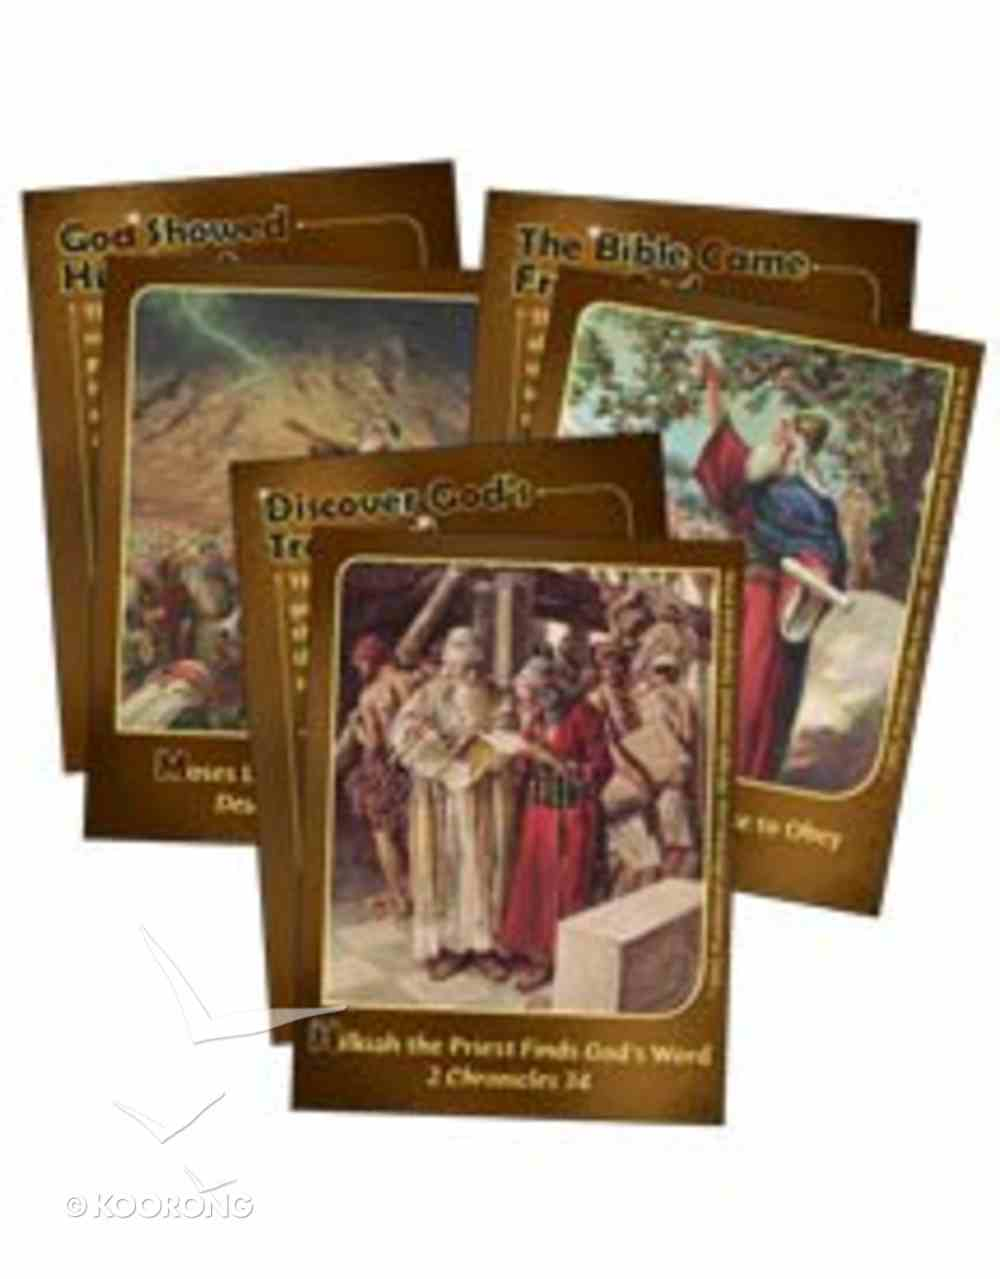 Dlc A2: How We Got the Bible Ages 7-9 (Bible Cards) (Discipleland Level 2, Ages 7-9, Qtrs Abcd Series) Pack